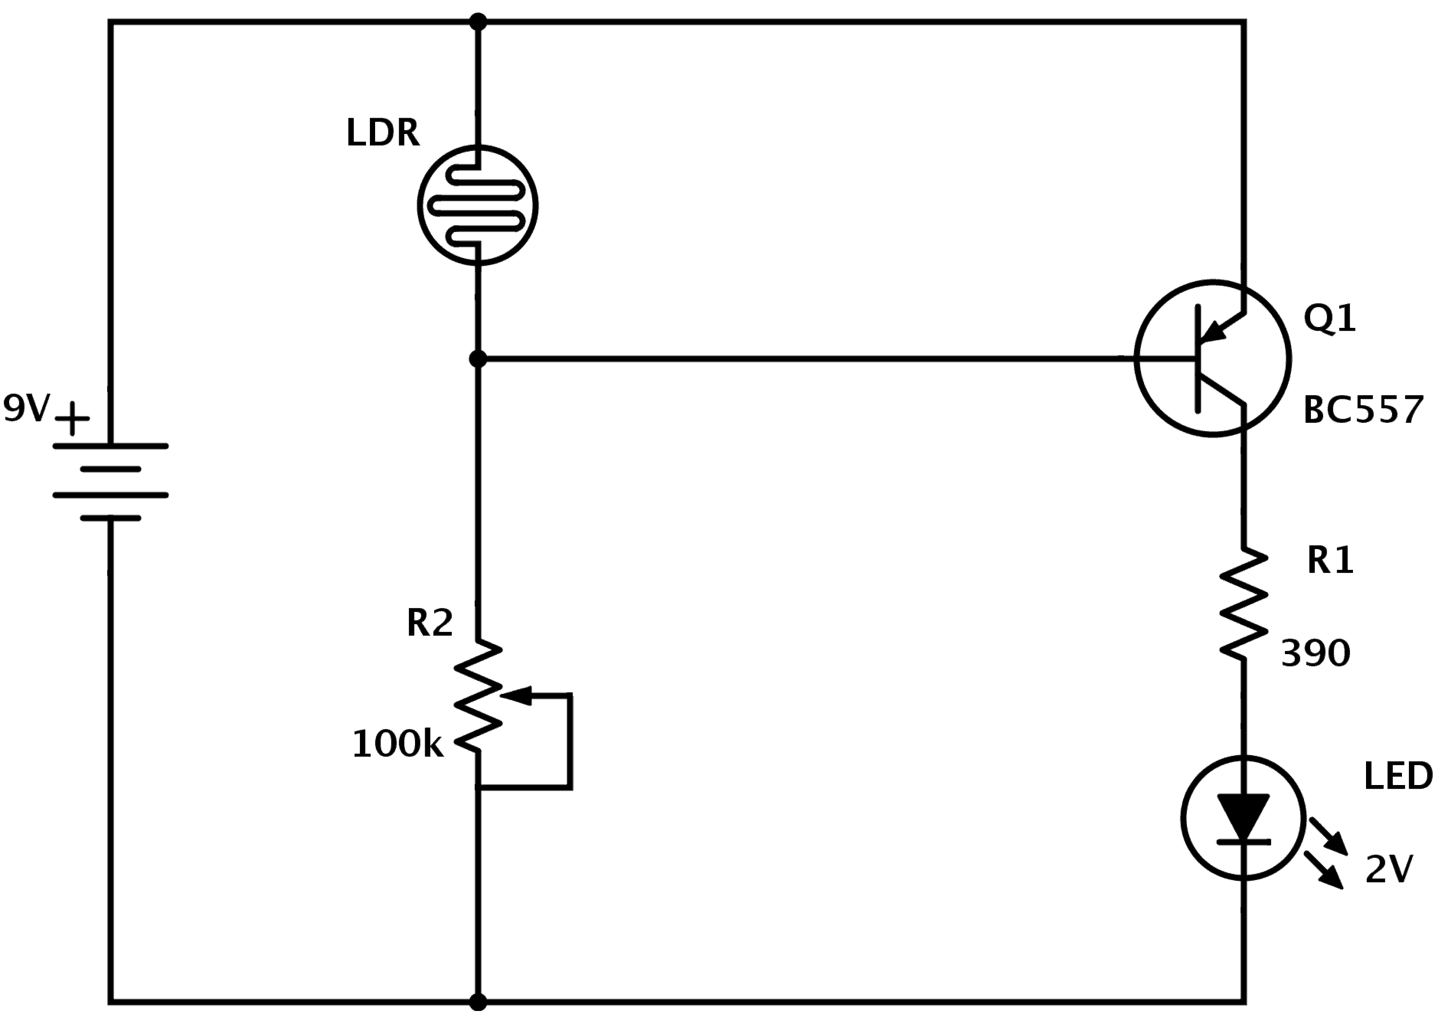 Ldr circuit diagram build electronic circuits ldr circuit diagram with pnp transistor dark detector pooptronica Choice Image